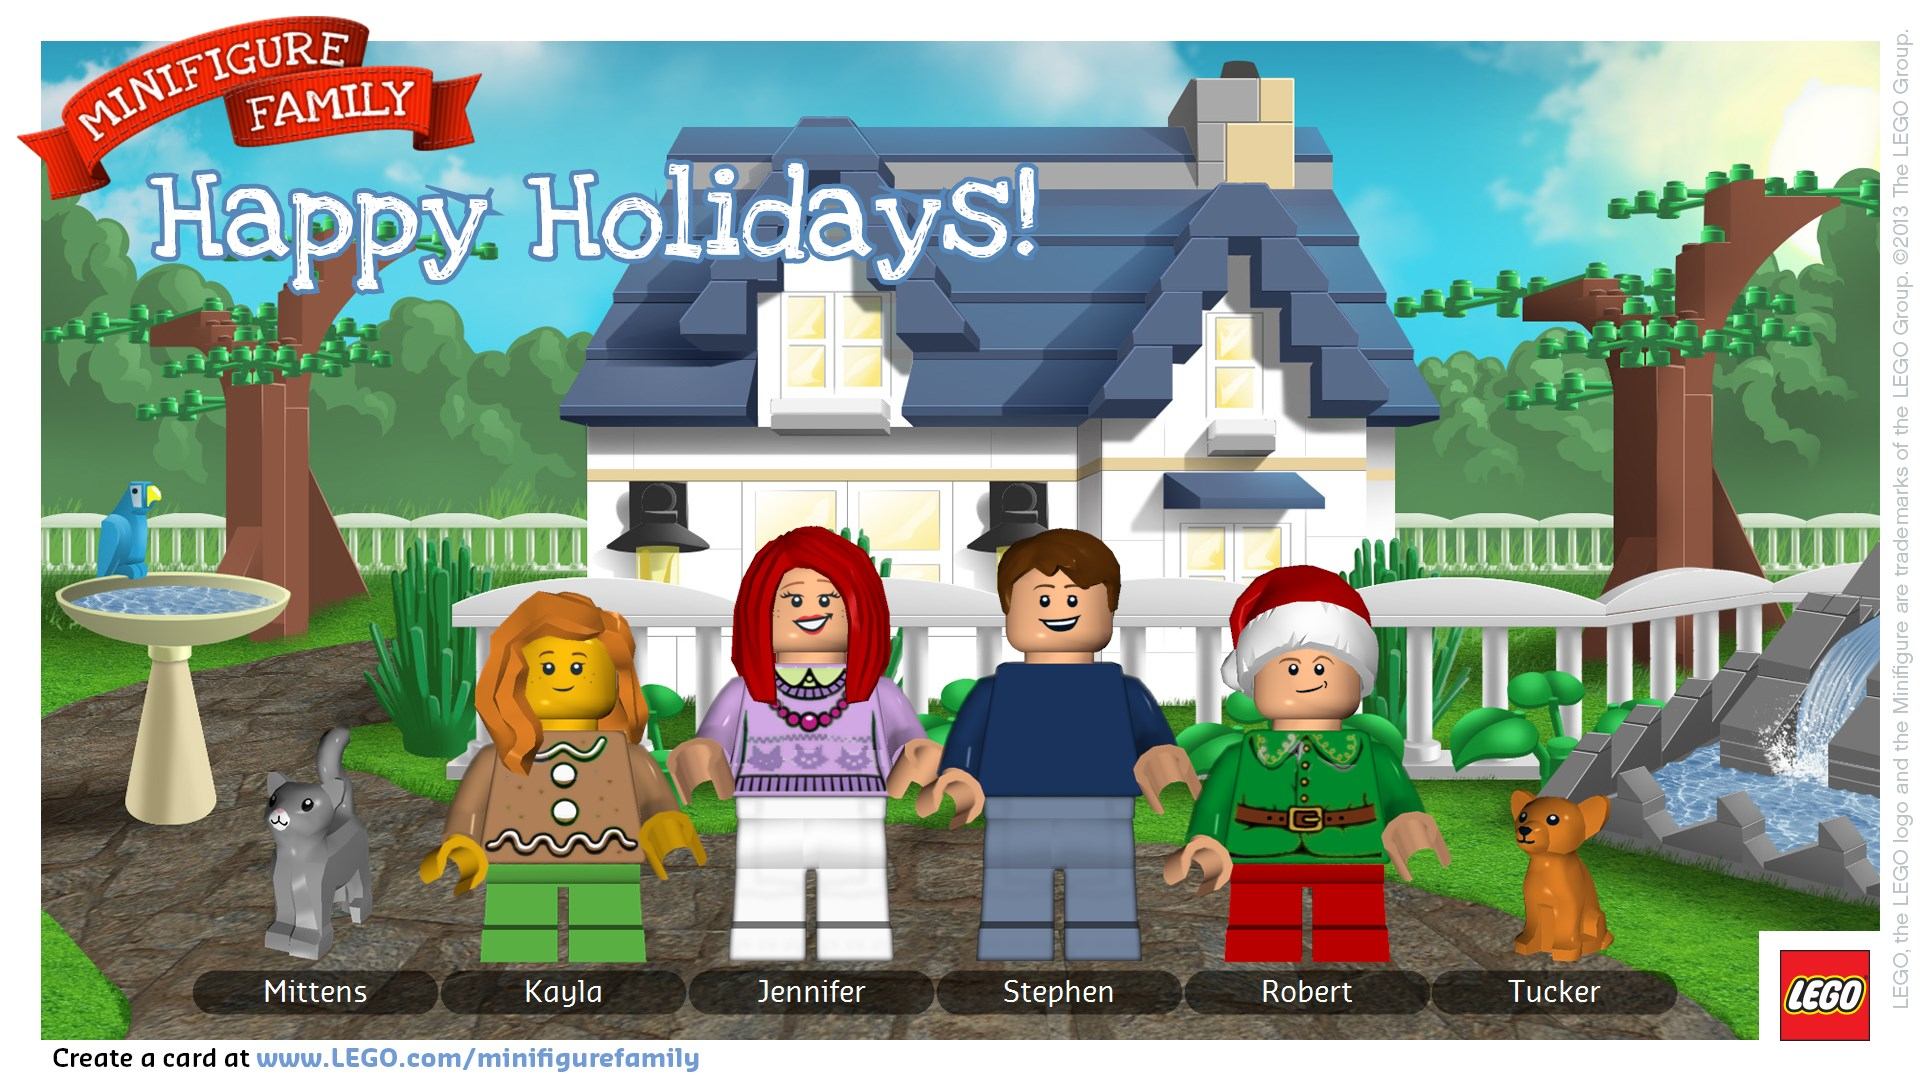 Make a LEGO Minifigure Holiday Card